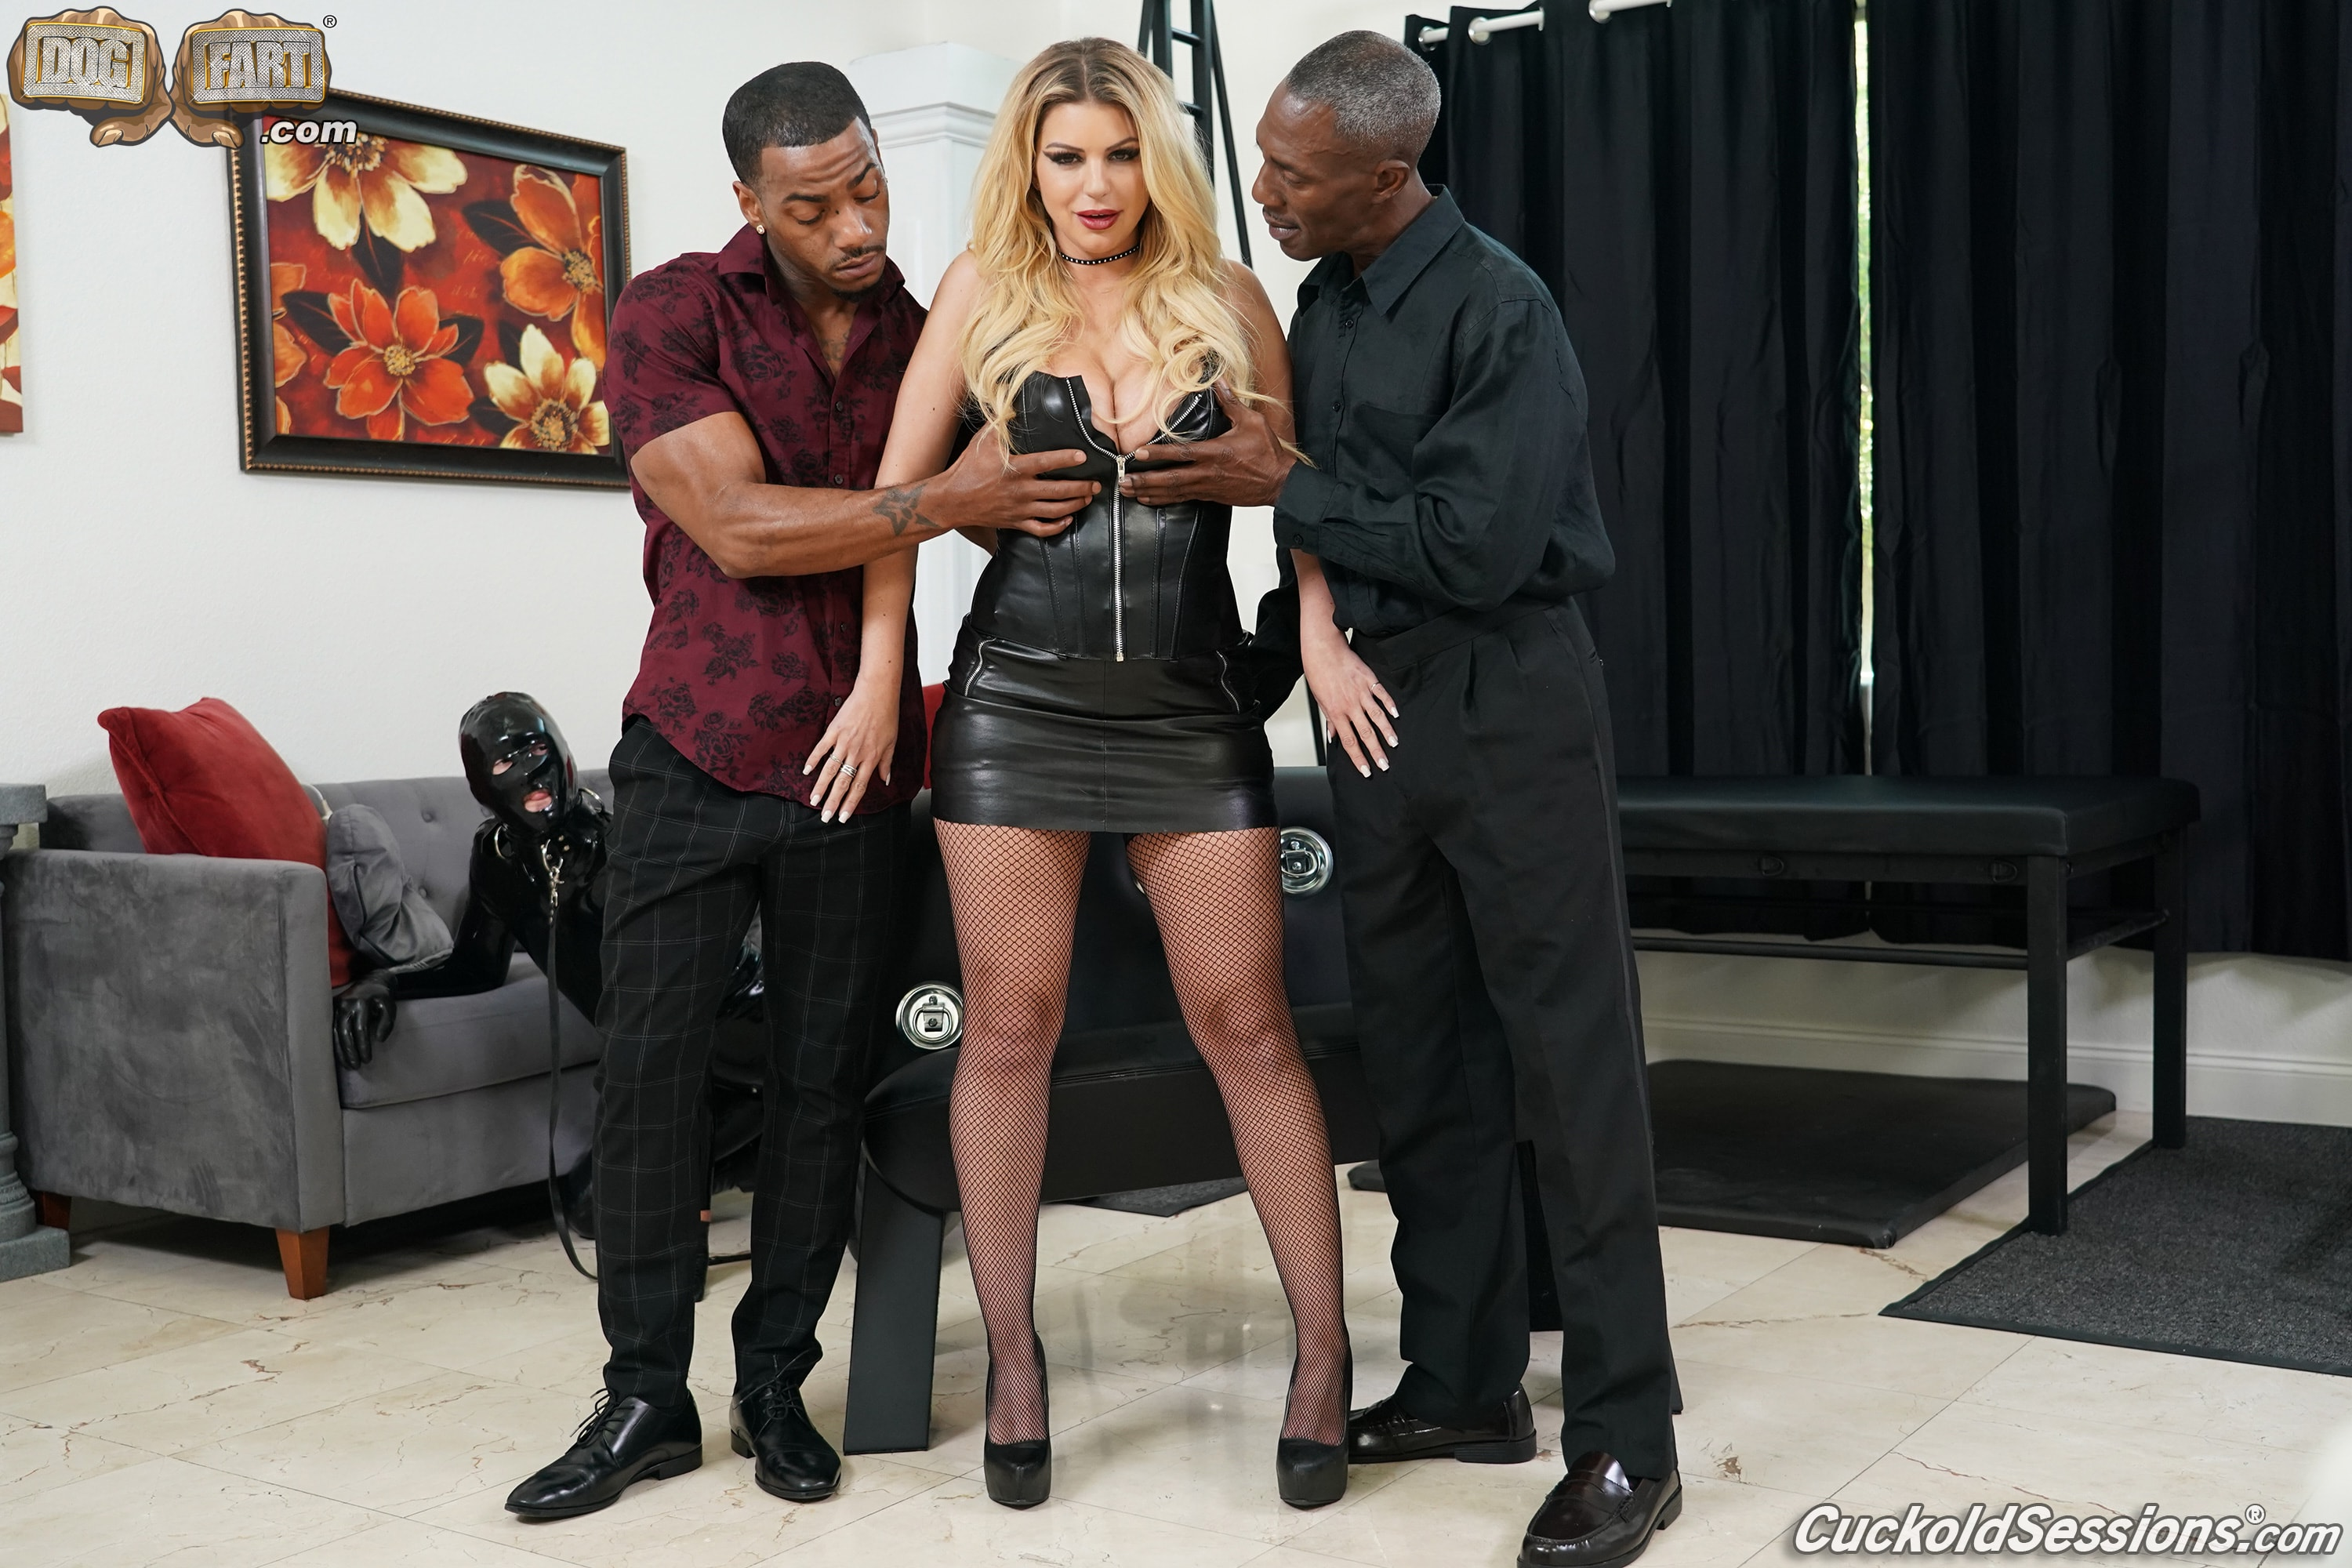 Dogfart '- Cuckold Sessions - Scene 4' starring Brooklyn Chase (Photo 11)